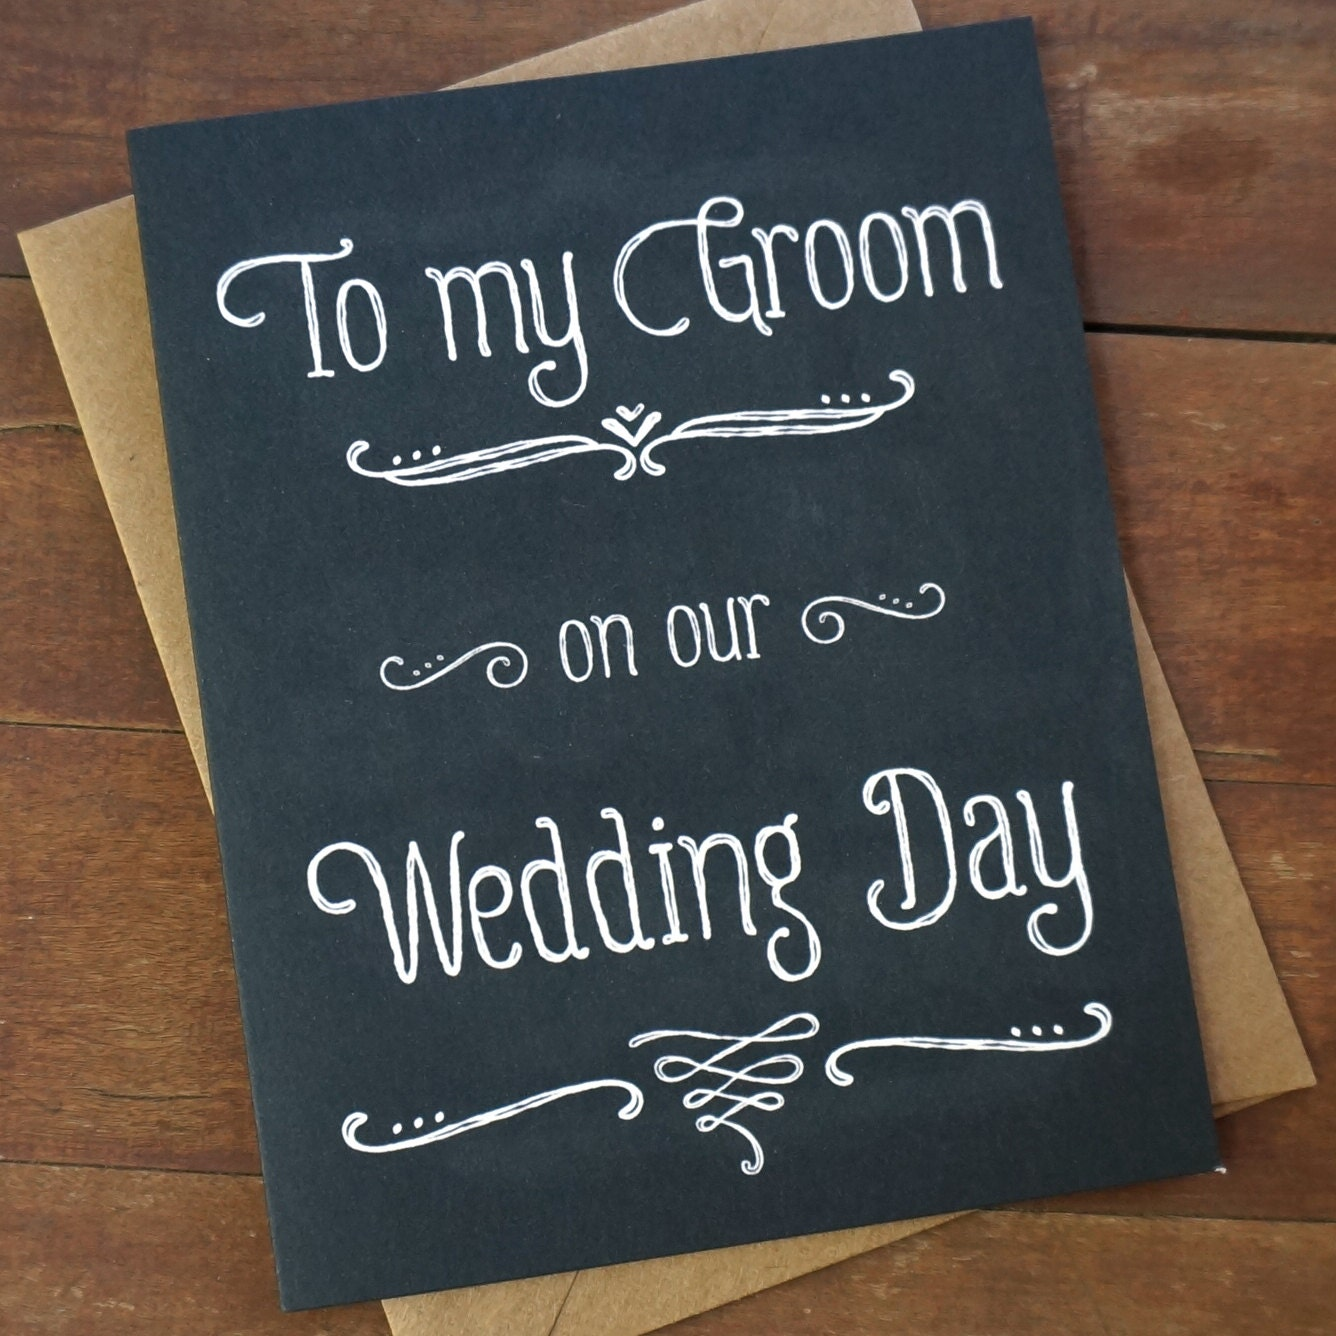 Wedding Day Presents For Groom From Bride : ... Wedding Day - Wedding Day Card - Groom Gift - Grooms gift from bride